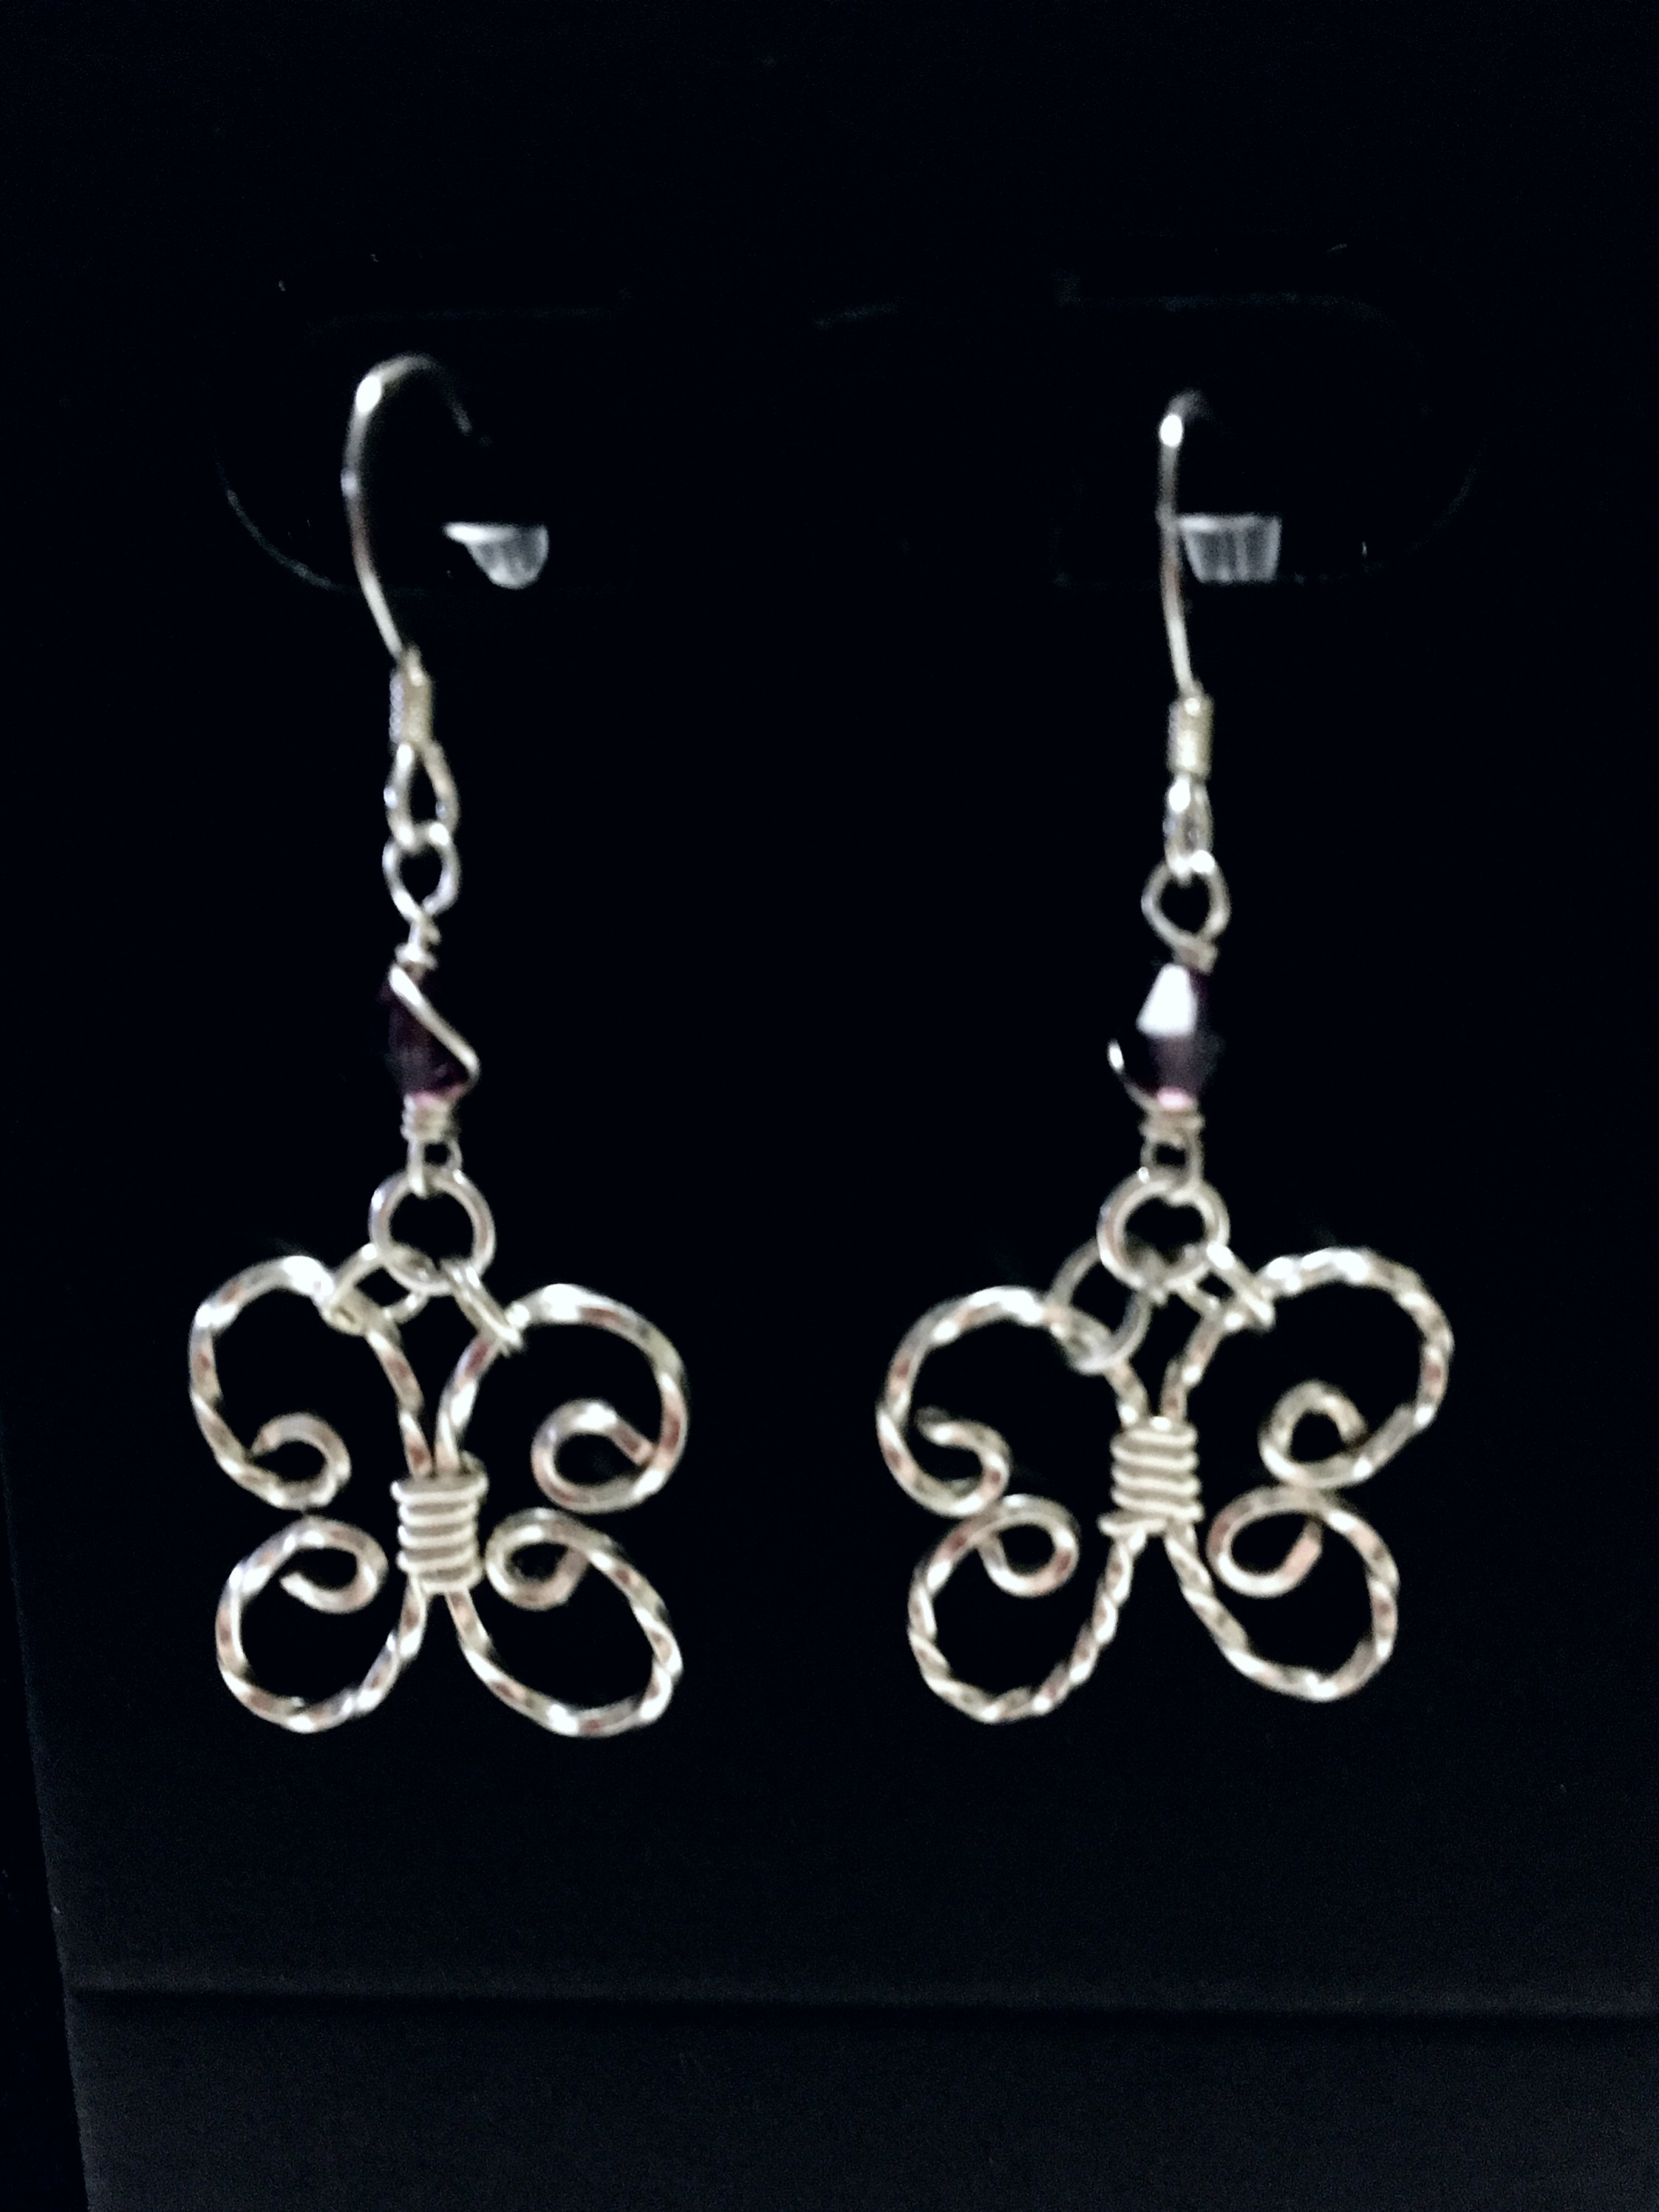 Candid Claire Earrings - Butterfly - Silver Plated and Sterling